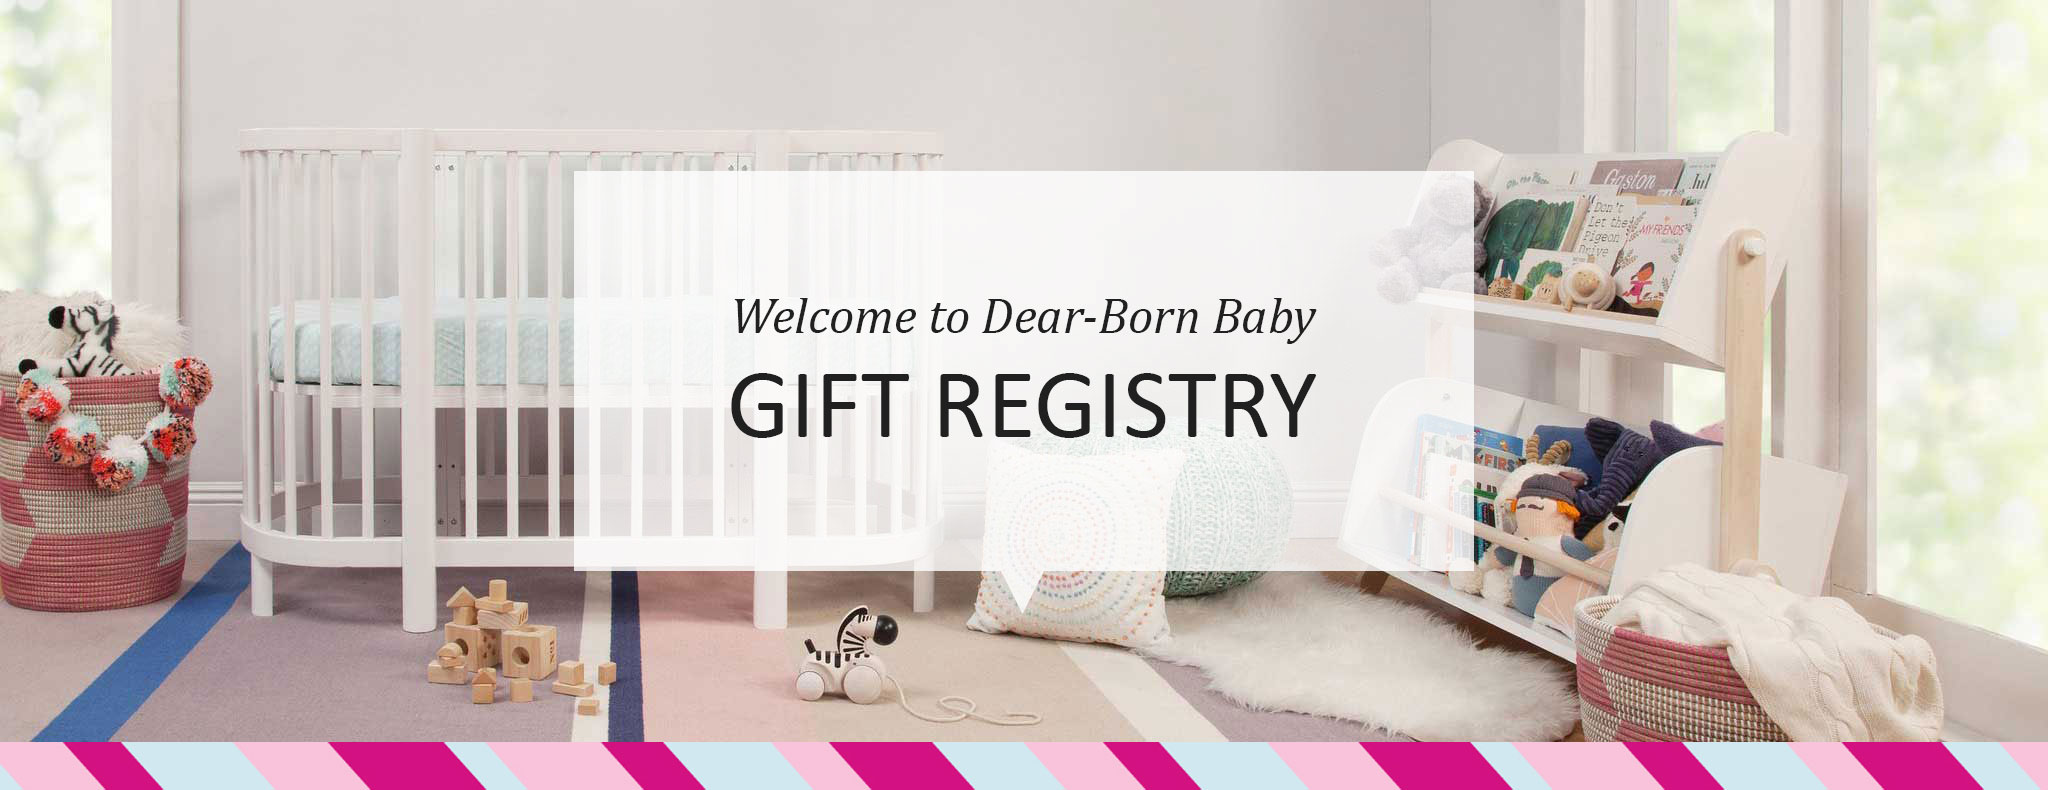 Dearborn Baby Gift Registry